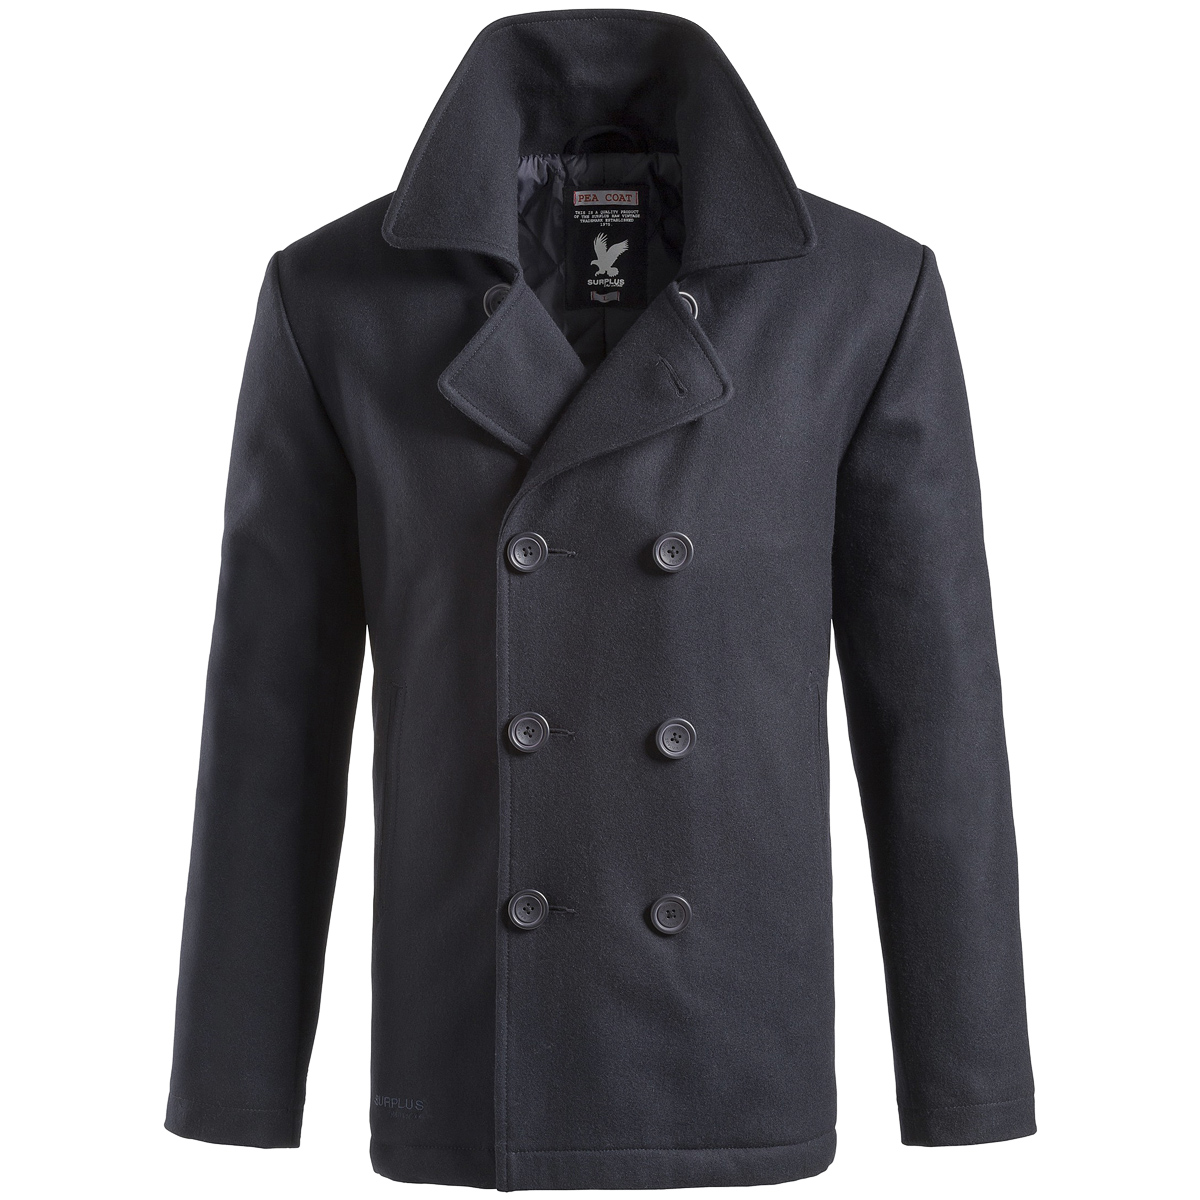 Surplus Navy Pea Coat